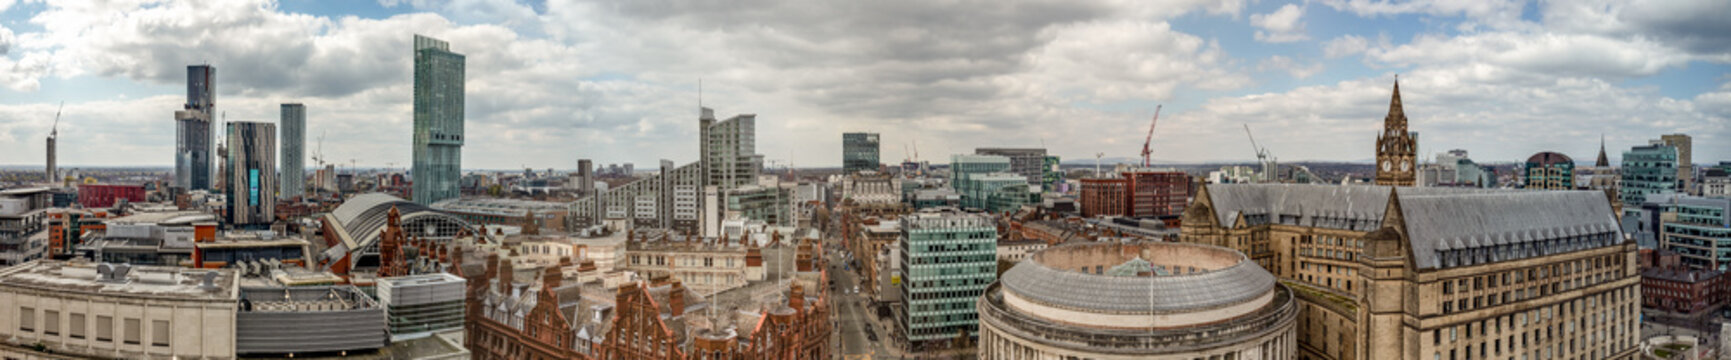 panoramic view of Manchester skyline